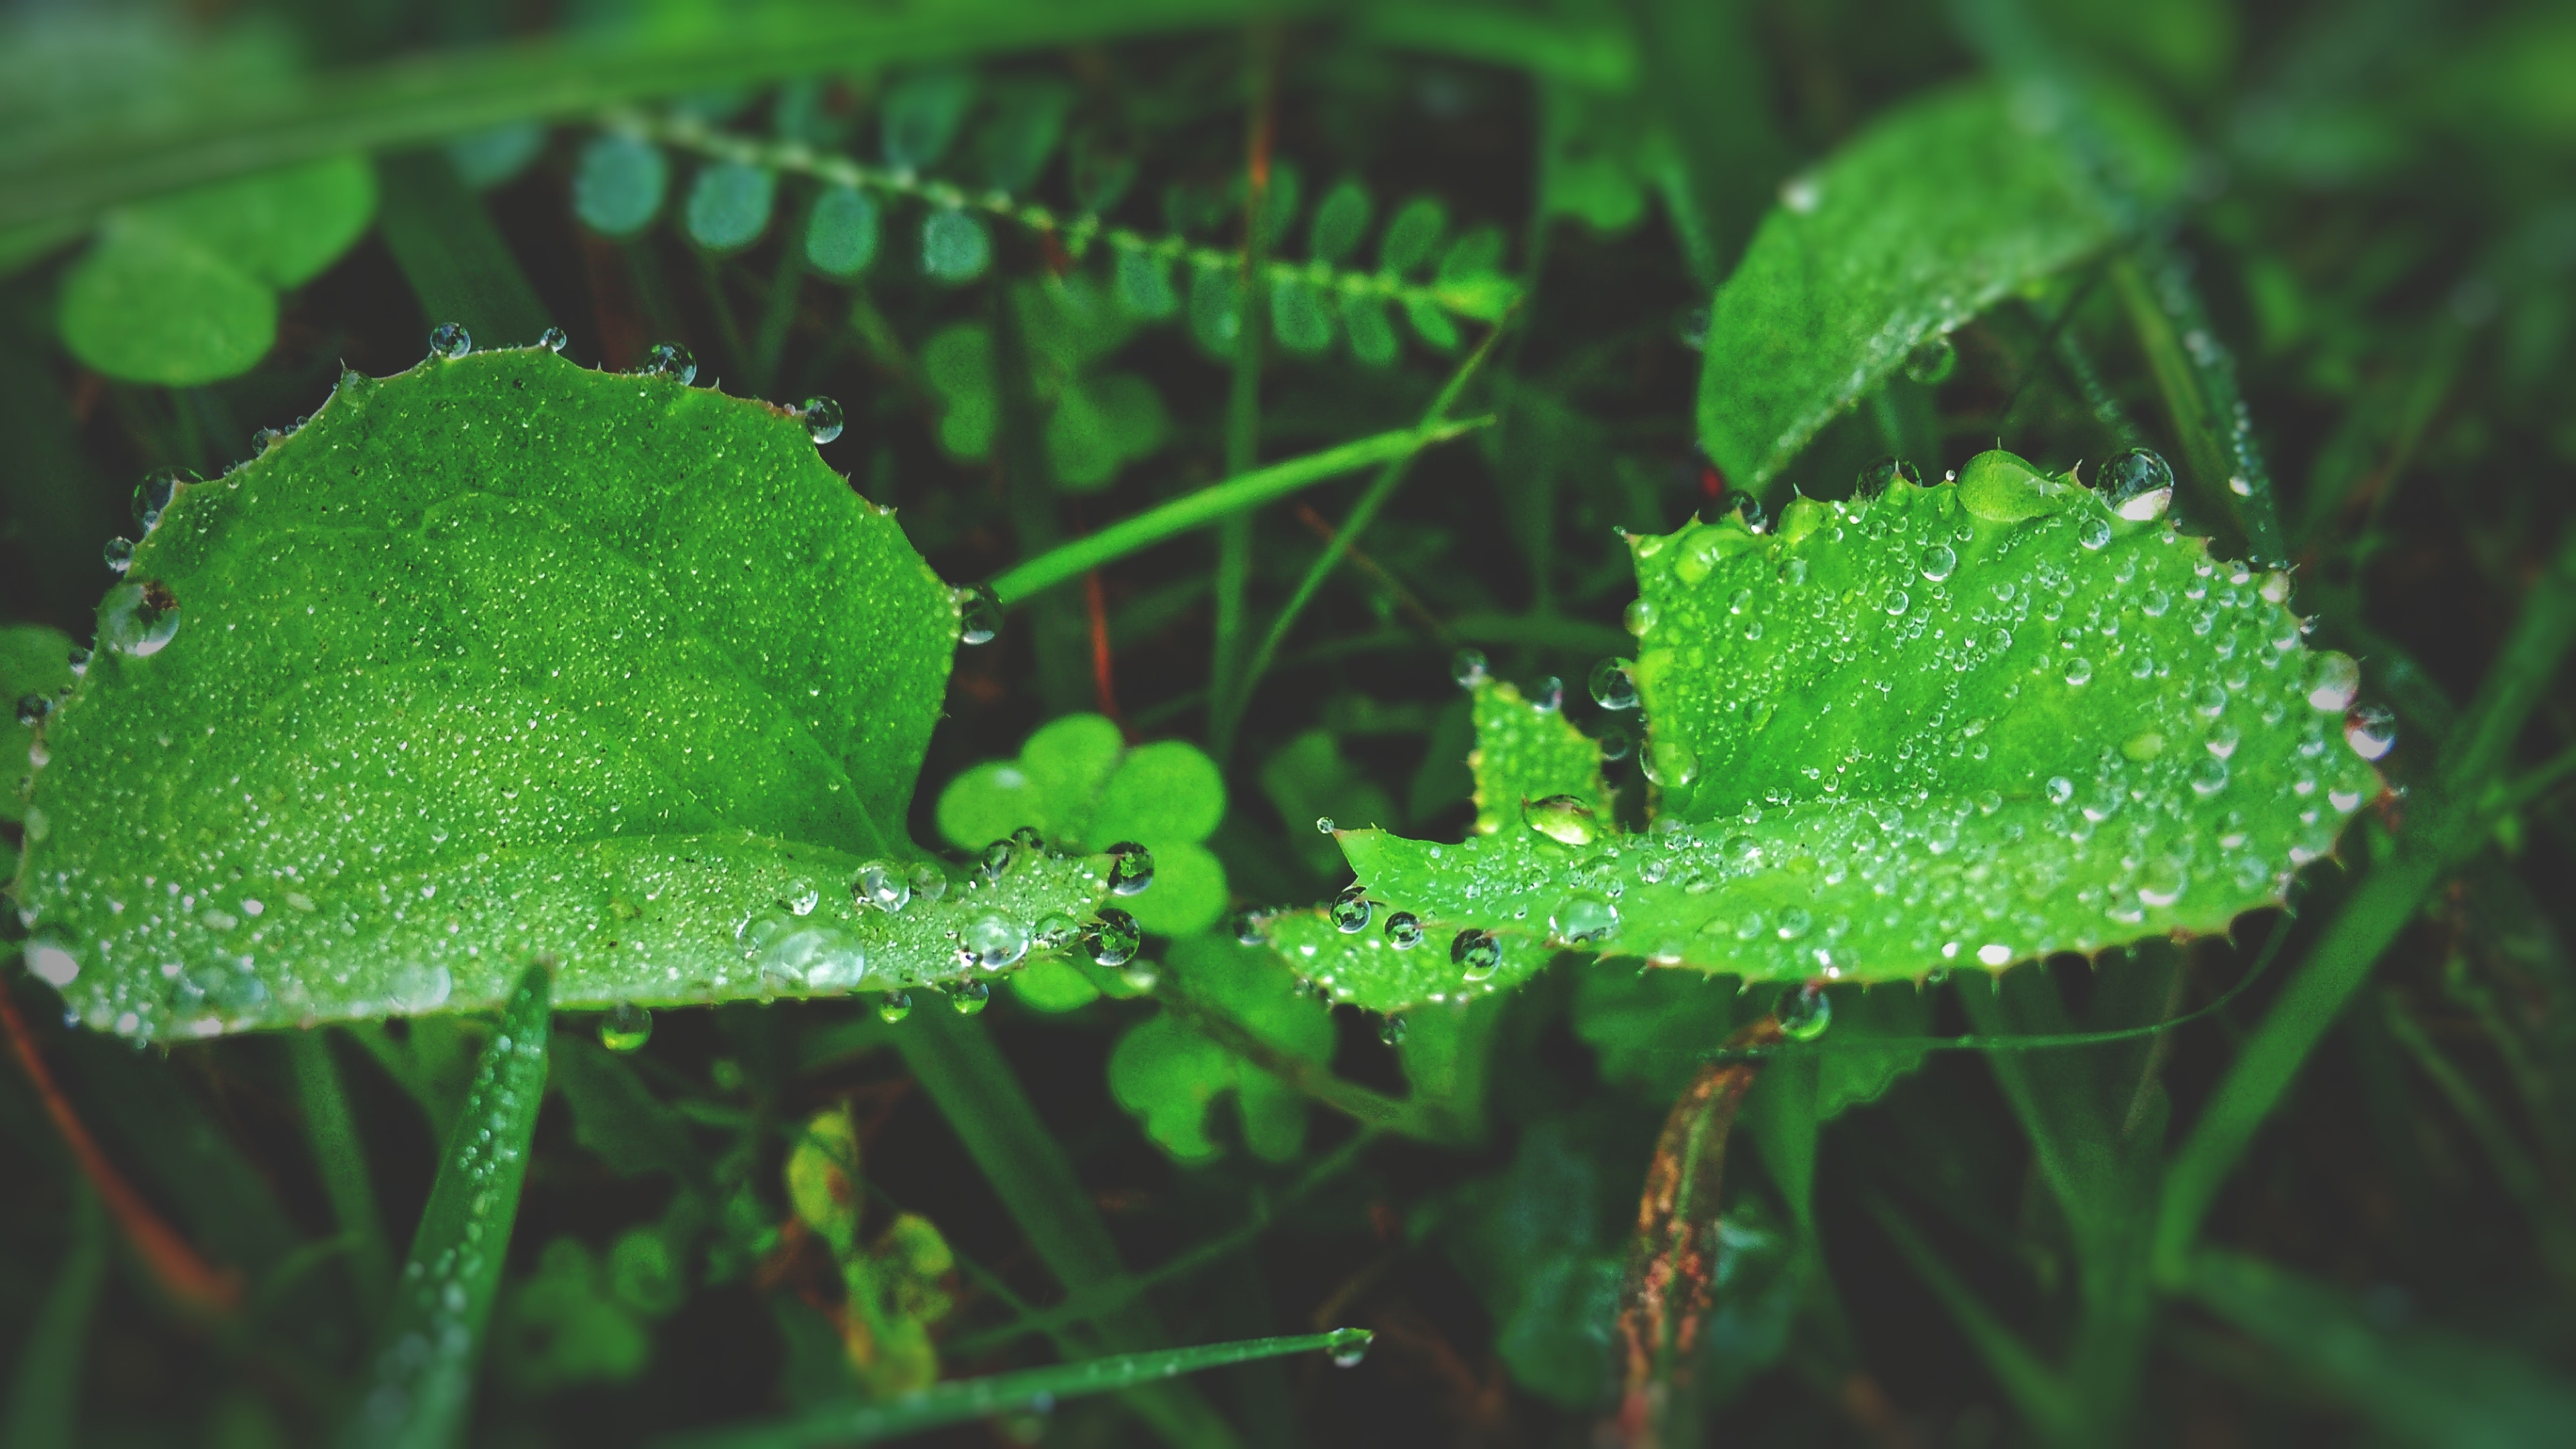 Green Leaf Plant With Raindrops Photo